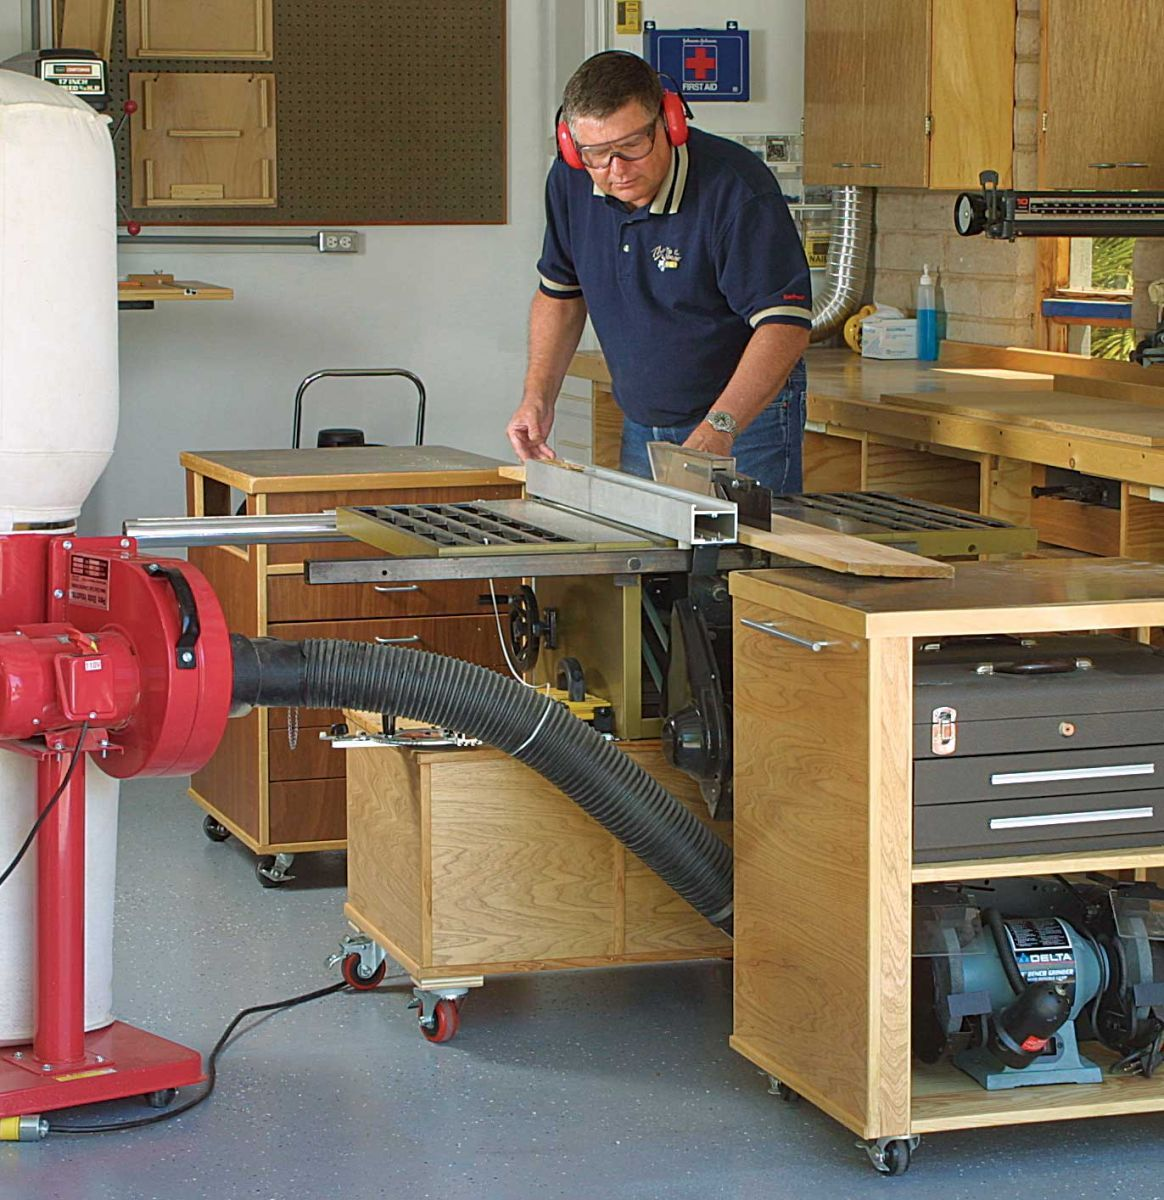 awesome modular workshop carts workshop pinterest garage garage workshop plans roll away workshop garage workshop plans garage workshop plans designs garage apartment floor plans workshop garage plans